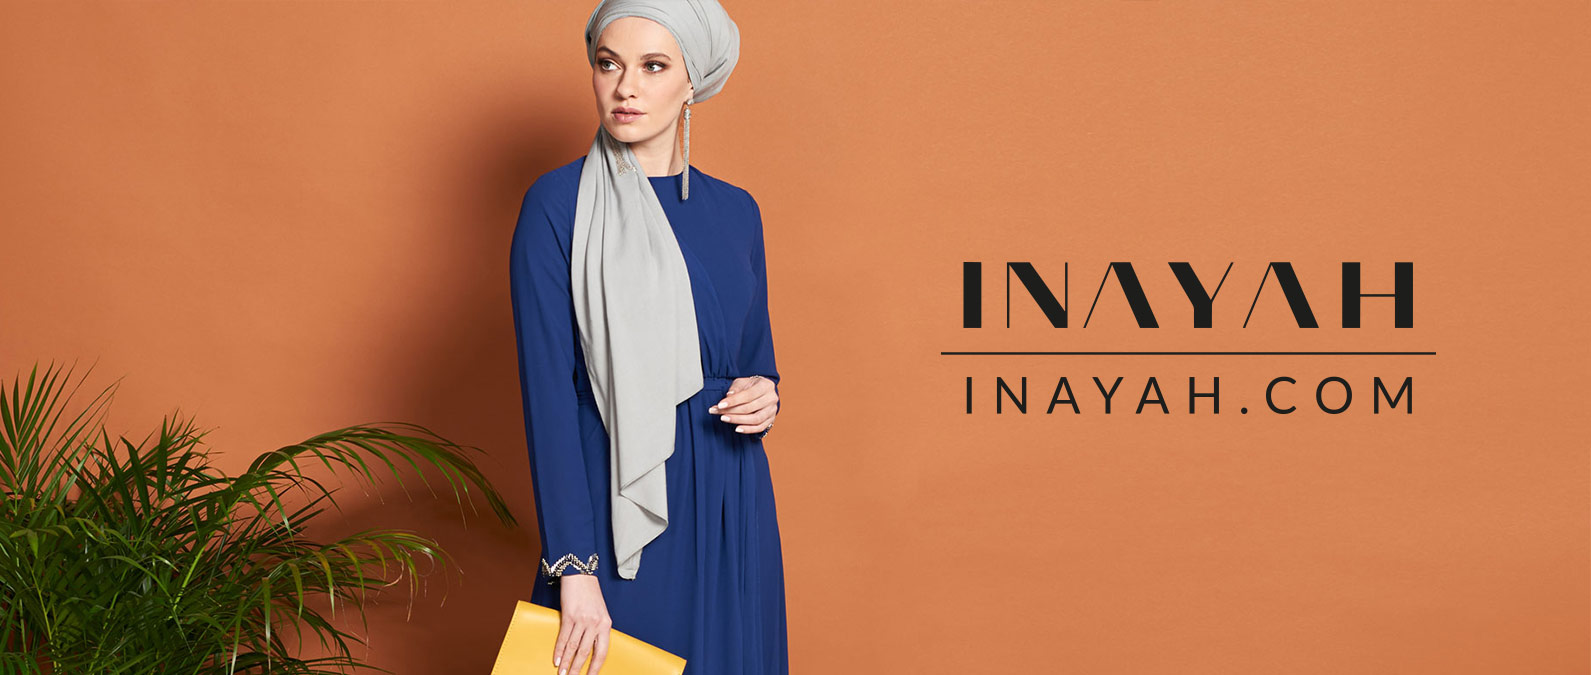 Don't miss Inayah's world debut at London Muslim Lifestyle Show, 21-22 April 2018, Olympia London